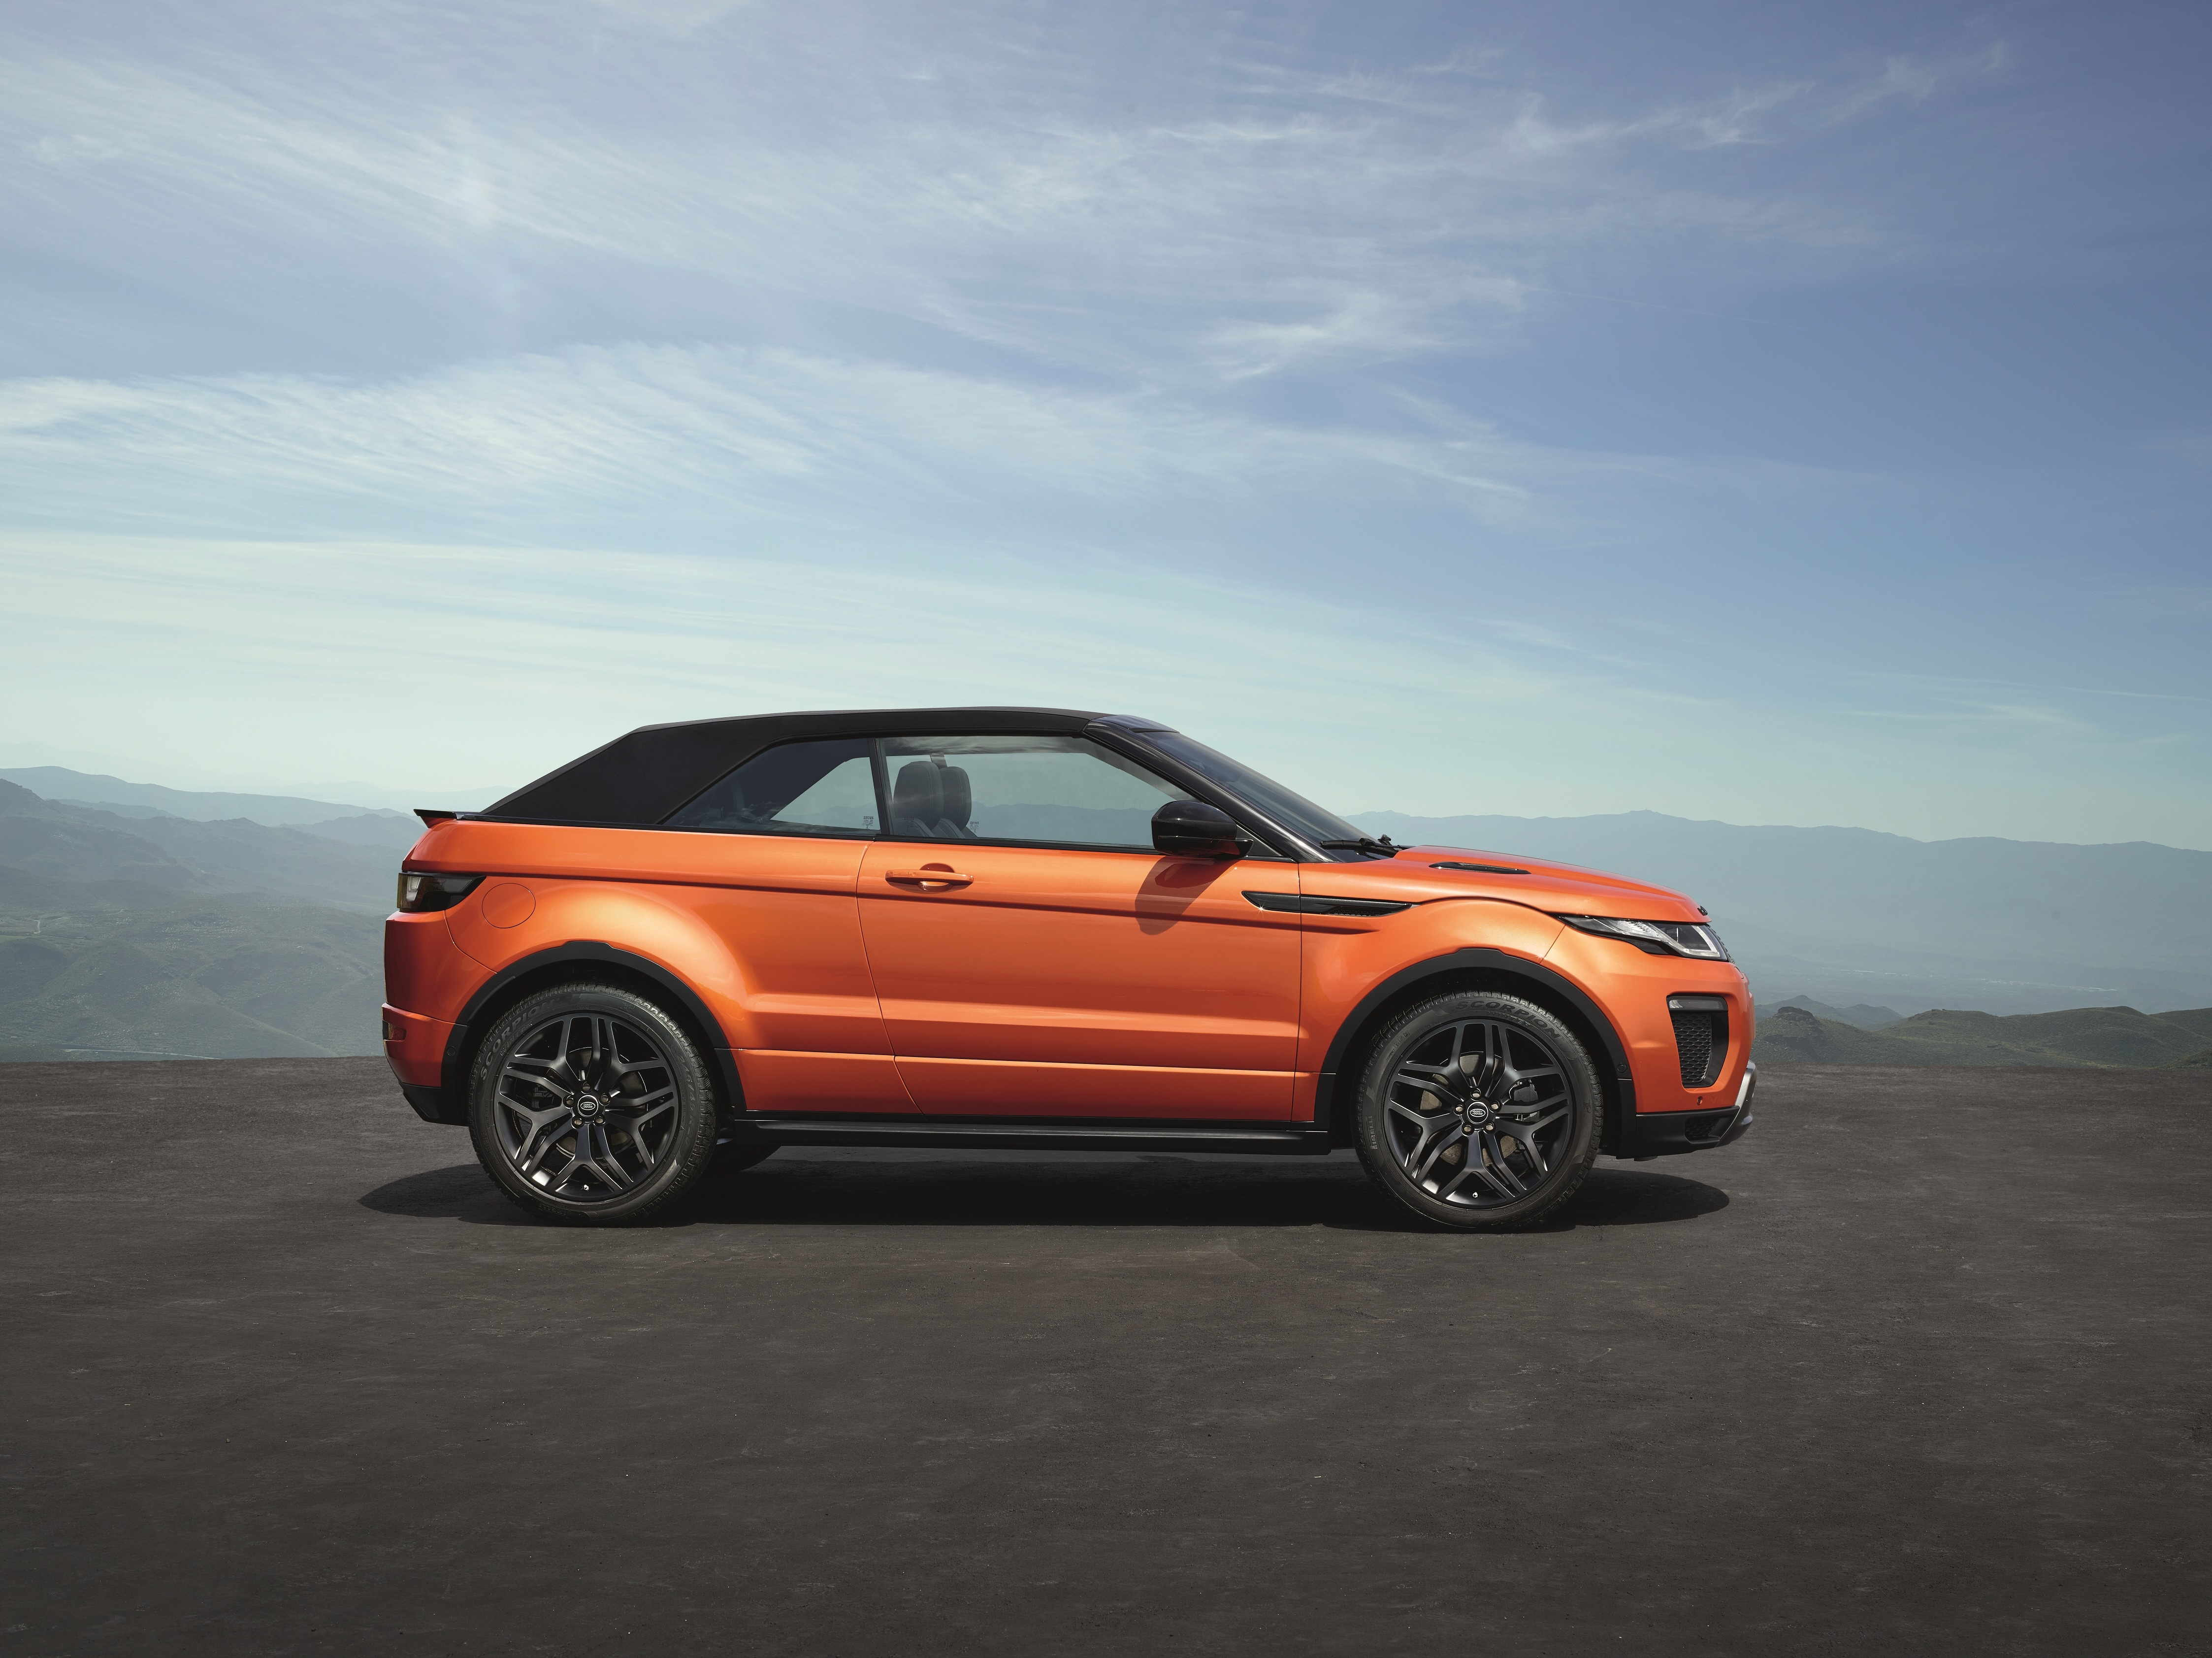 land rover range rover evoque cabriolet essais. Black Bedroom Furniture Sets. Home Design Ideas